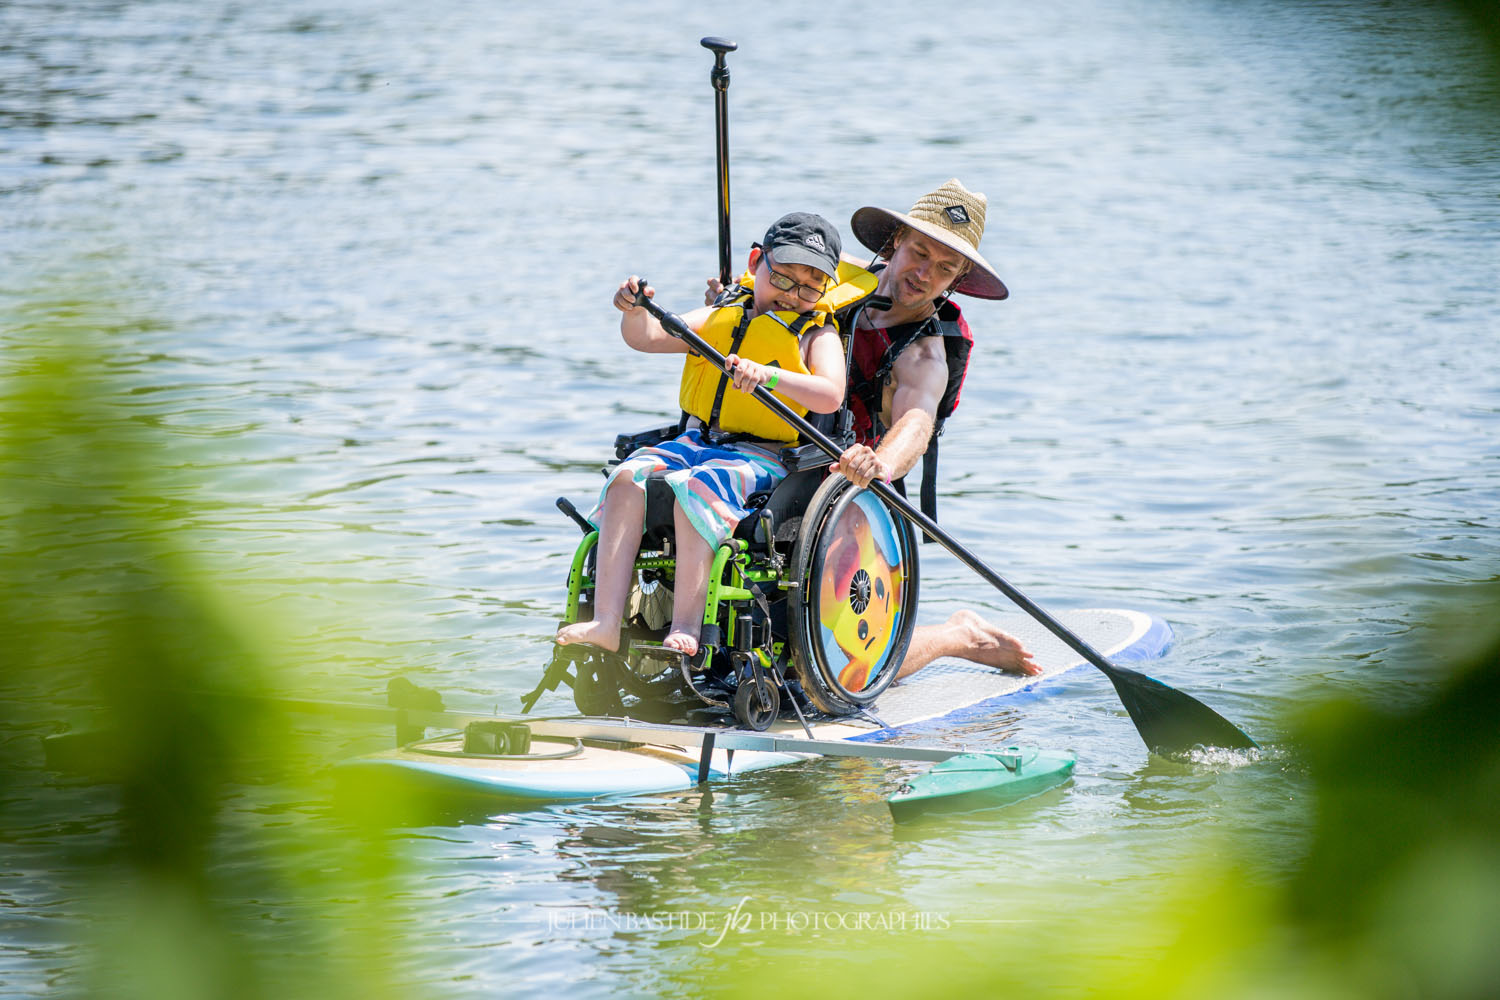 KSF Montréal - SUP - Cours, location, boutique, camp de jour - SUP adapté (paddle board en chaise roulante) - Adapted SUP (wheelchair paddleboard) - SUP yoga & fitness - Courses, rentals, shop, summer camp